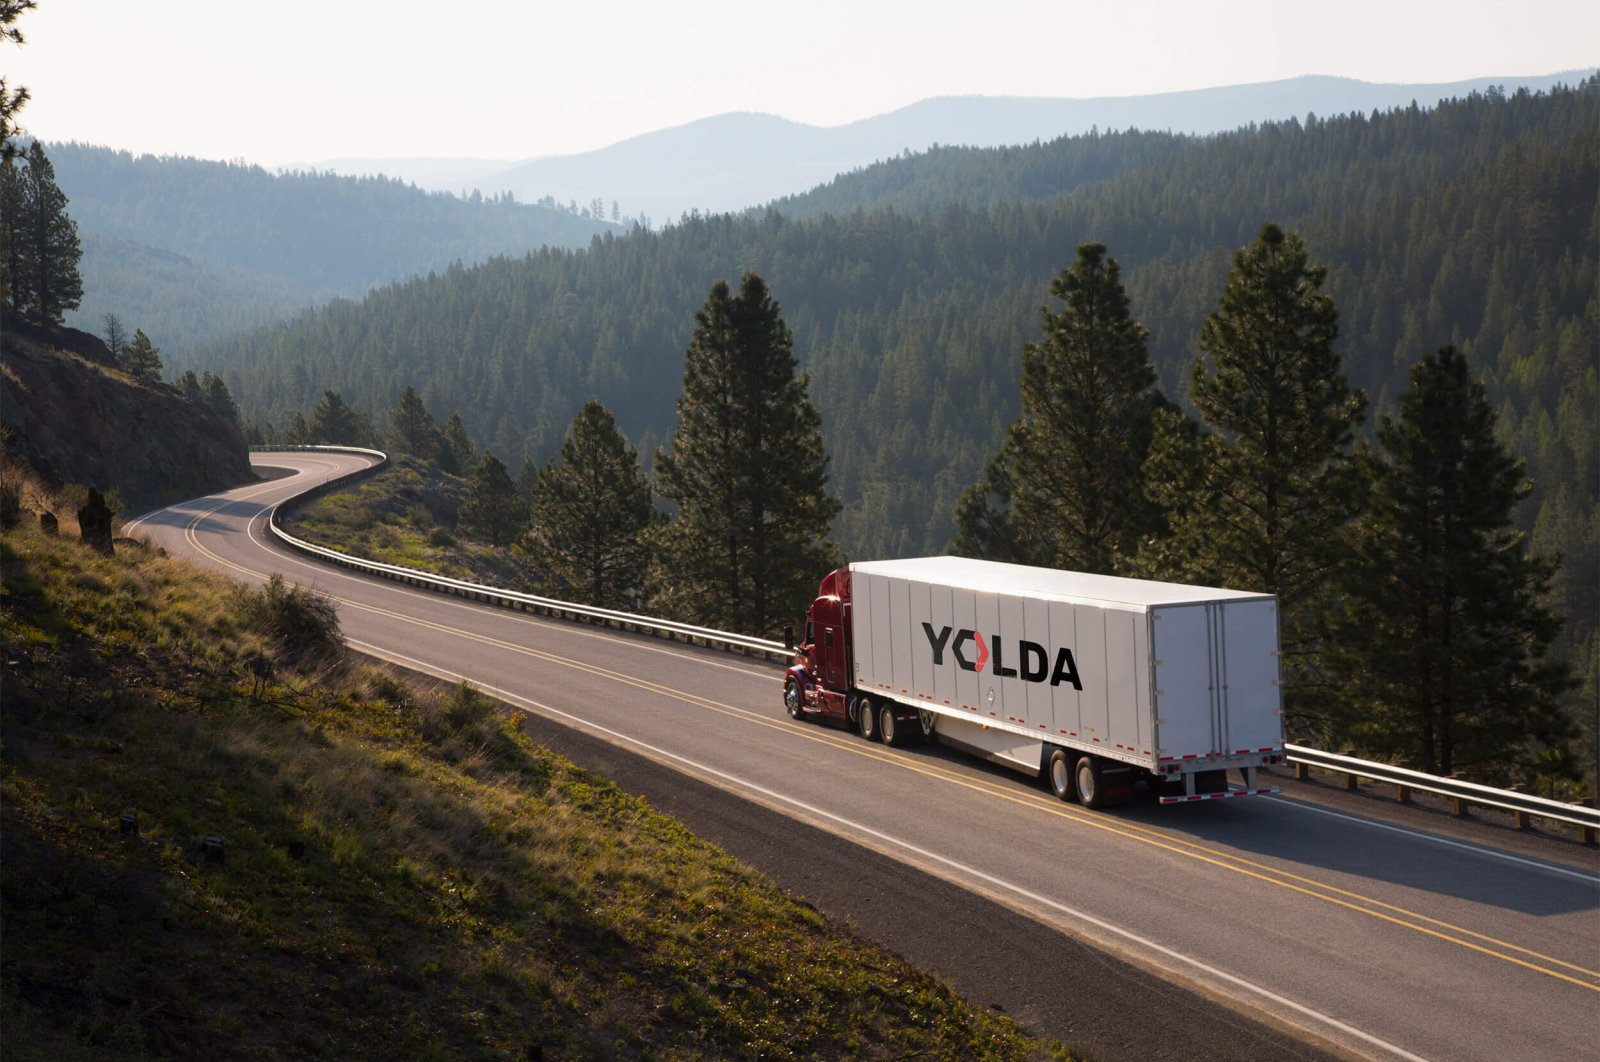 Digital logistics startup Yolda's latest deal paves the way for Turkish businesses to export to the EU. (Photo courtesy of Yolda)